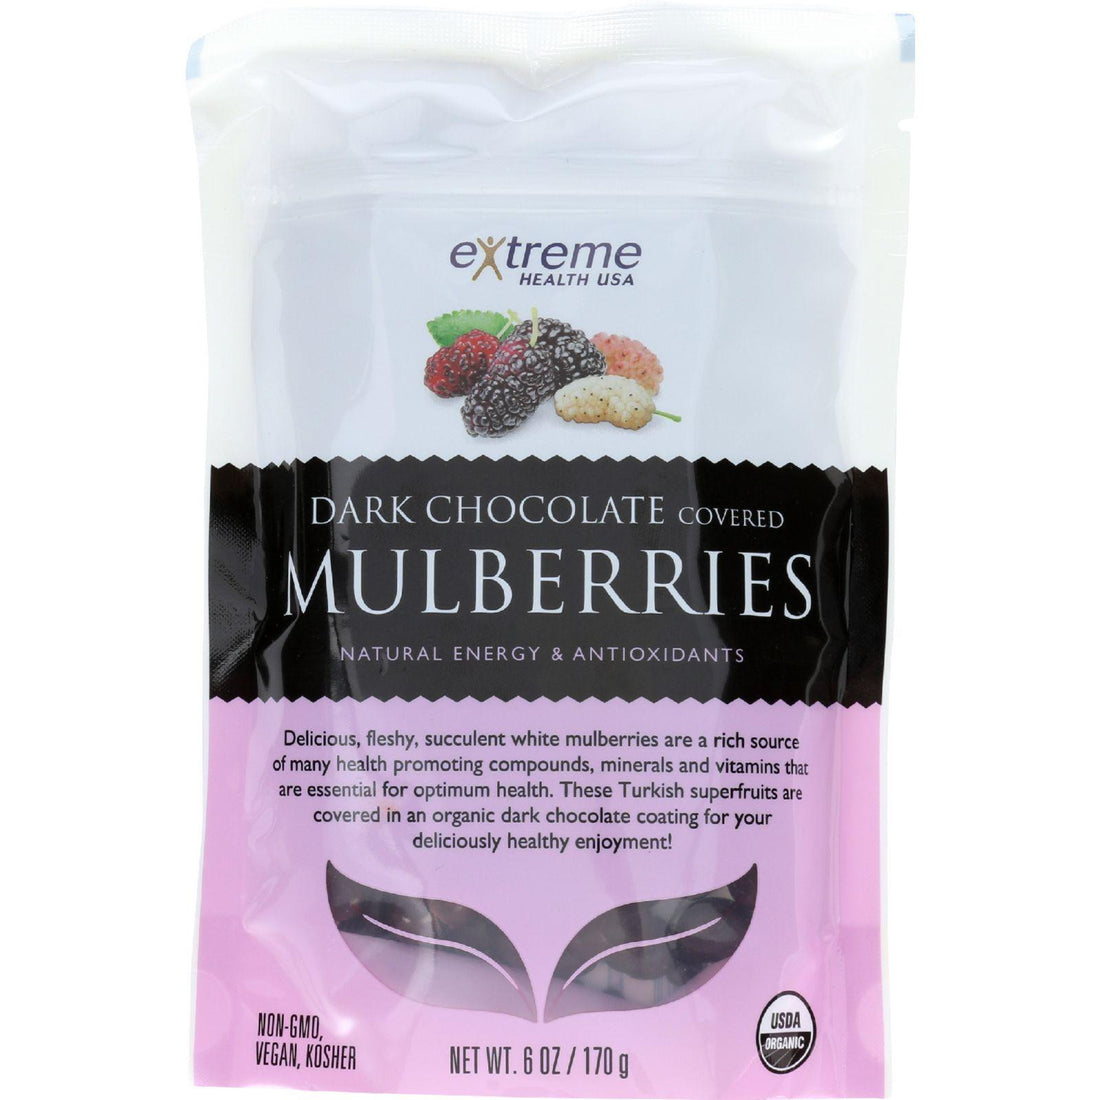 Mother Mantis: Extreme Health Usa Superfruits - Organic - Mulberries - Dark Chocolate Covered - 6 Oz - Case Of 6 Extreme Health Usa